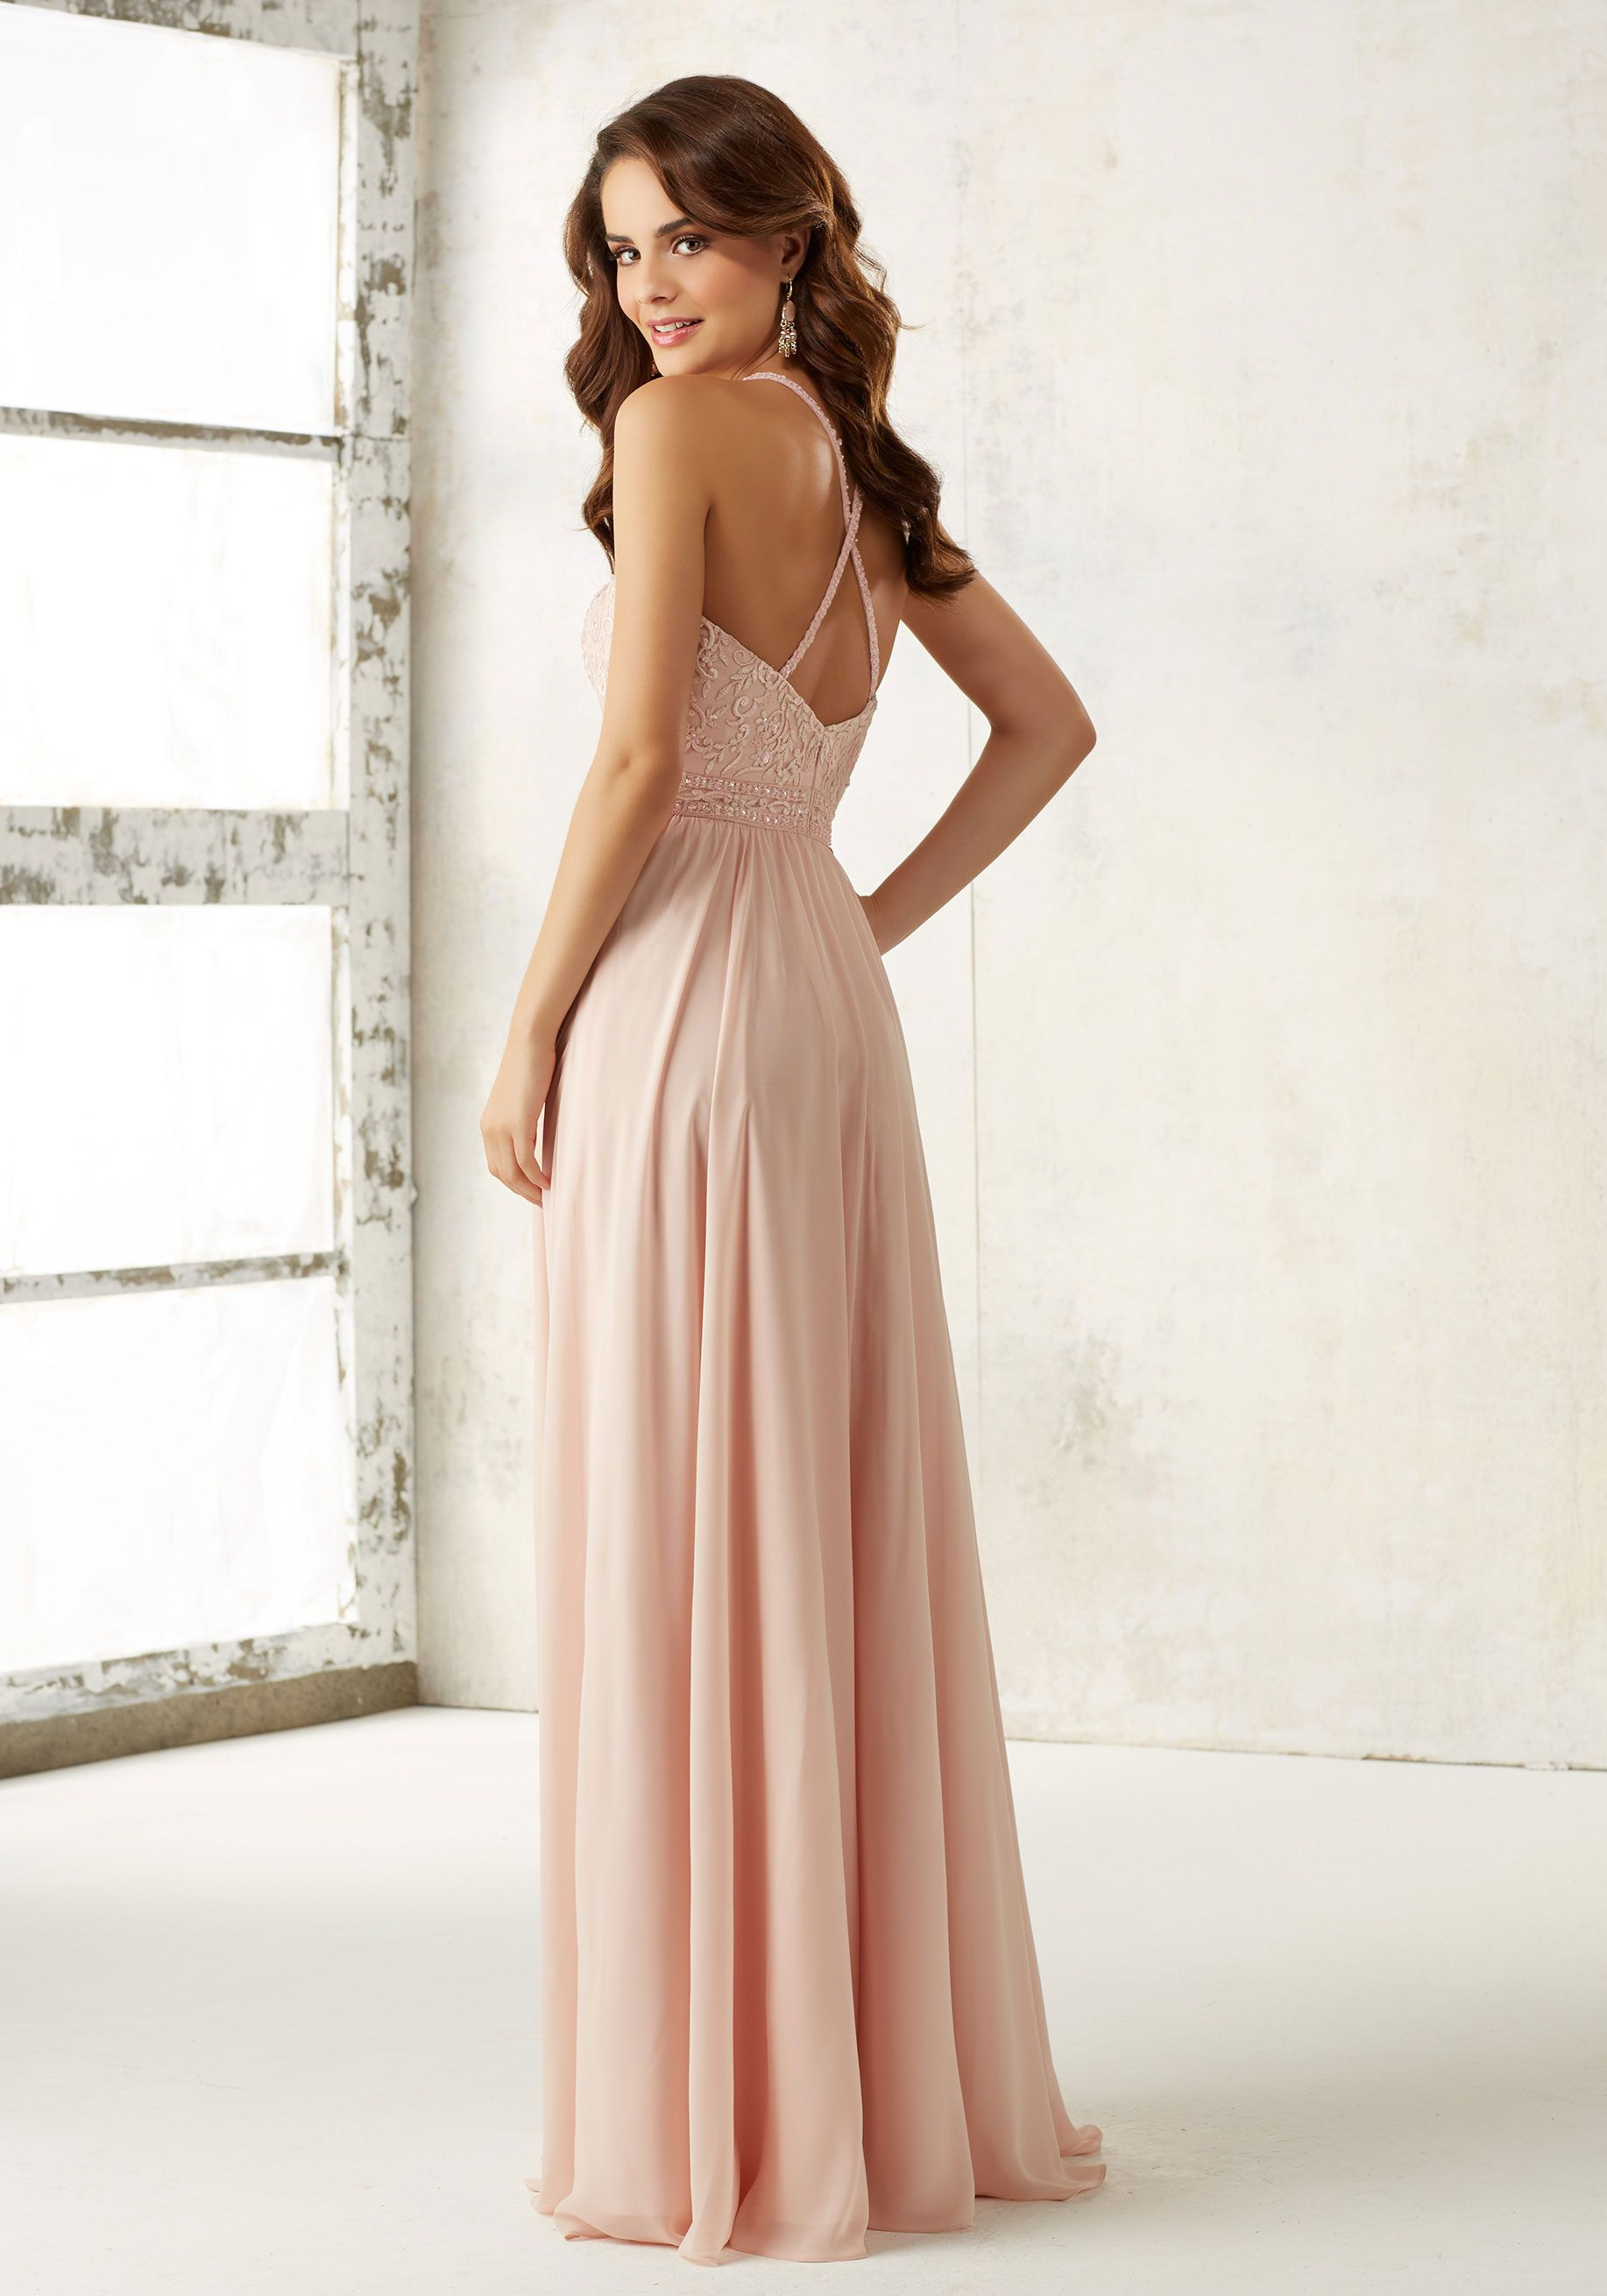 0440b97902a Morilee by Madeline Gardner Bridesmaids Style 21512 | Elaborate Embroidery  and Beading Accents the Bodice of This Beautiful Chiffon Bridesmaids Dress.